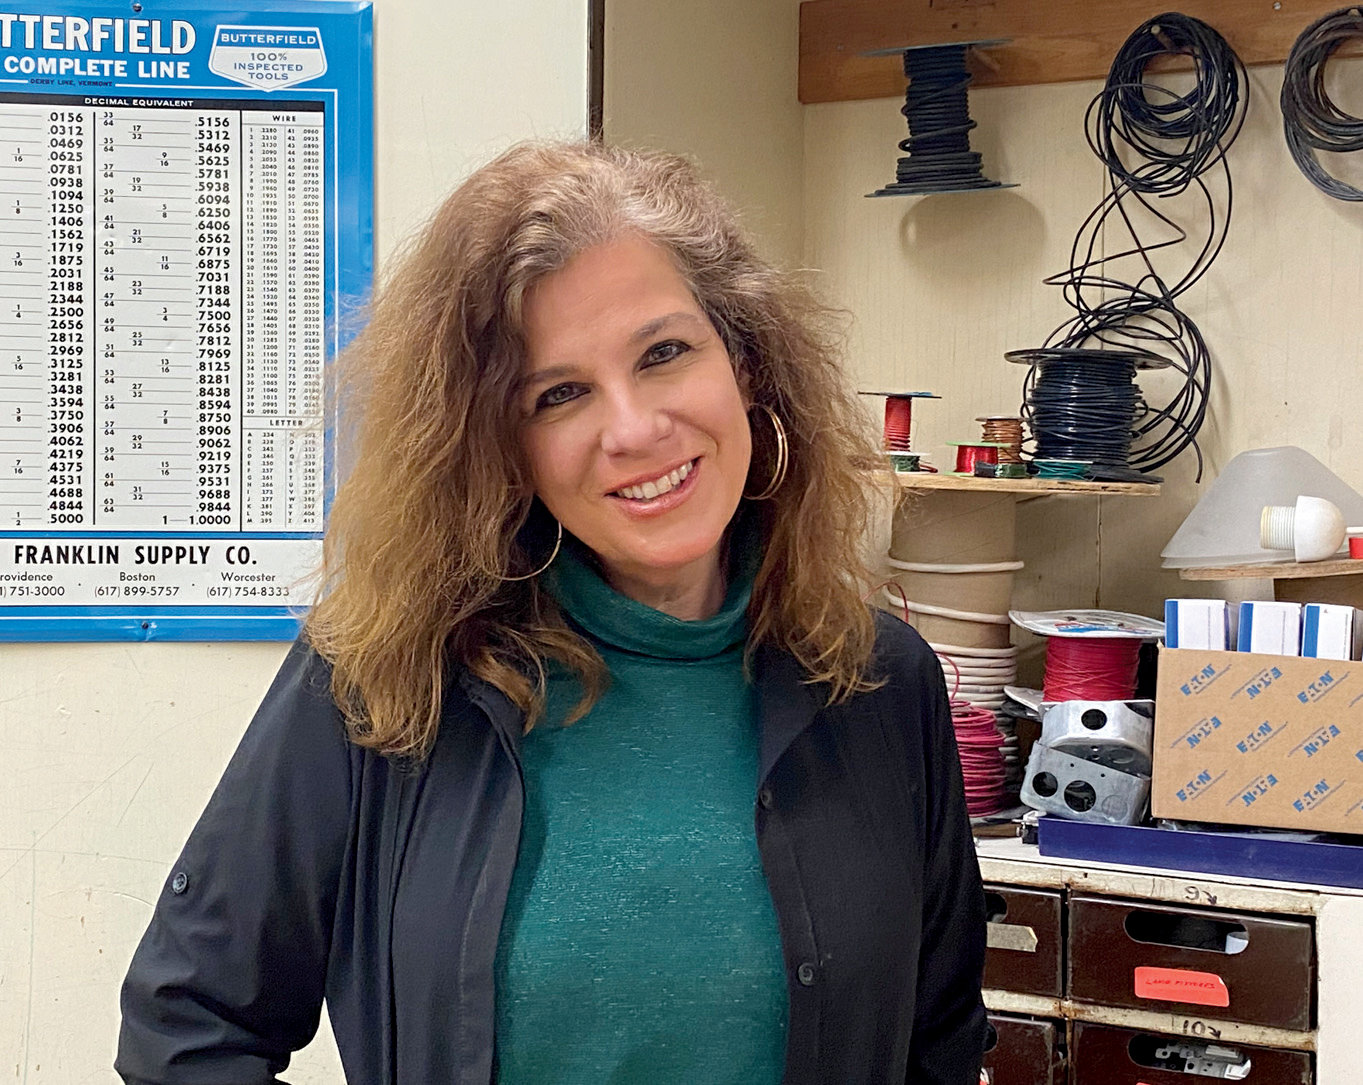 MORE THAN A MENTOR: DelSanto stands in front of one of the many electrical equipment cabinets around the room. Should she win the LifeChanger of the Year Award, the prize money will go right back into her classroom.